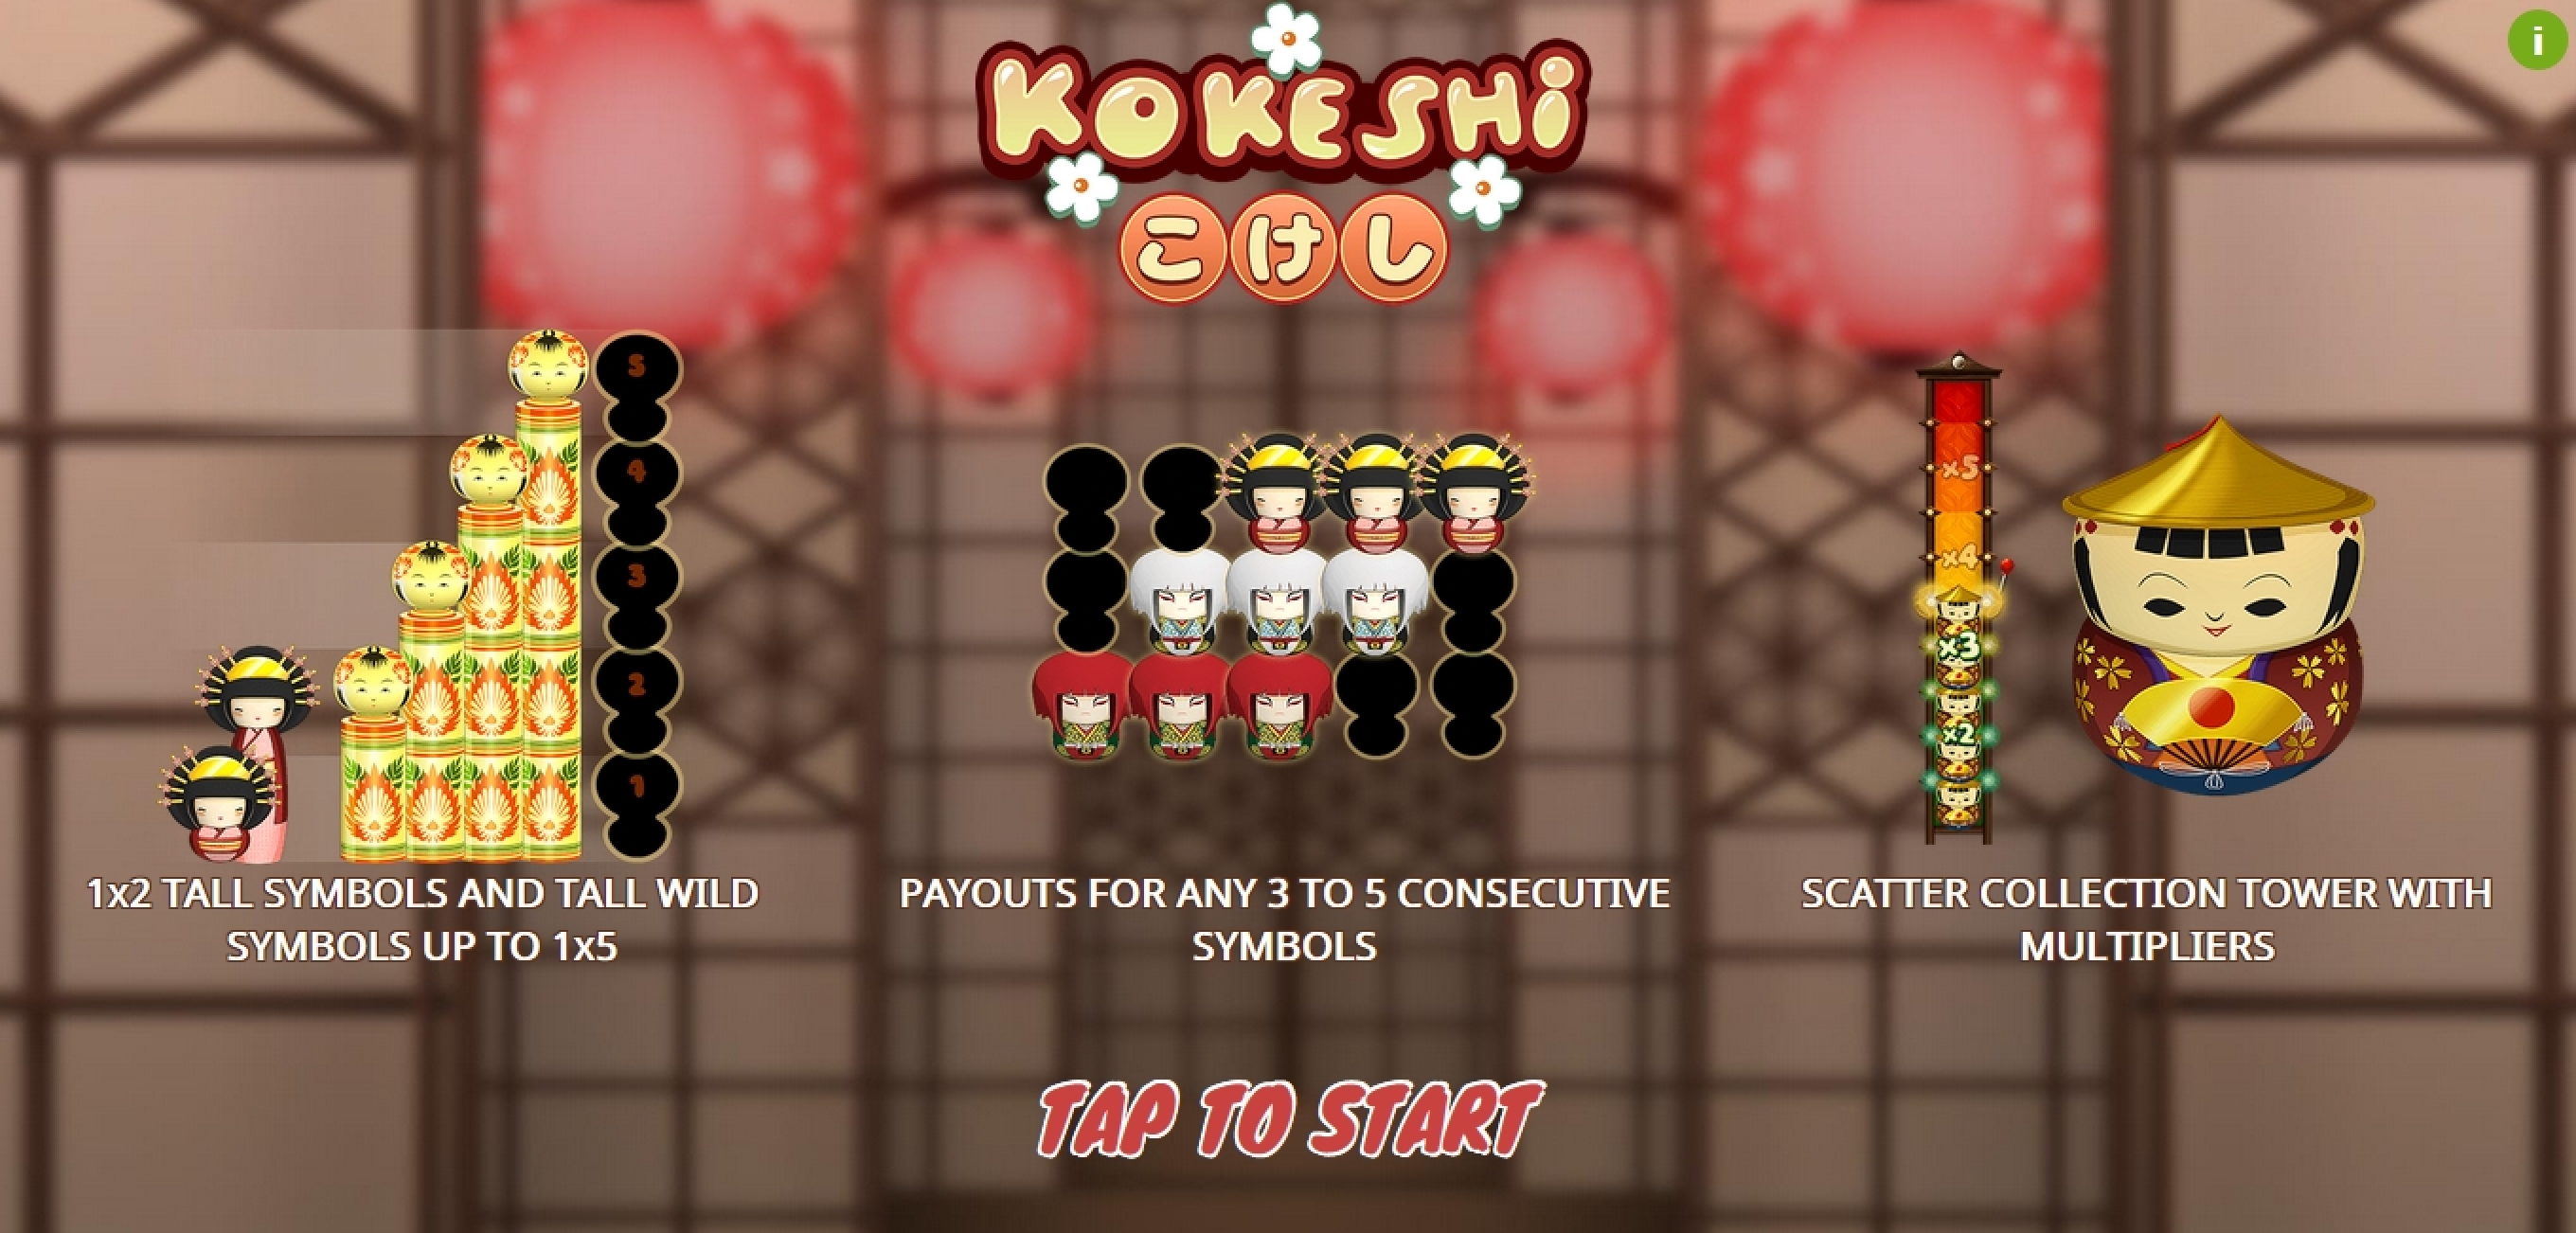 Play Kokeshi Free Casino Slot Game by Gamatron